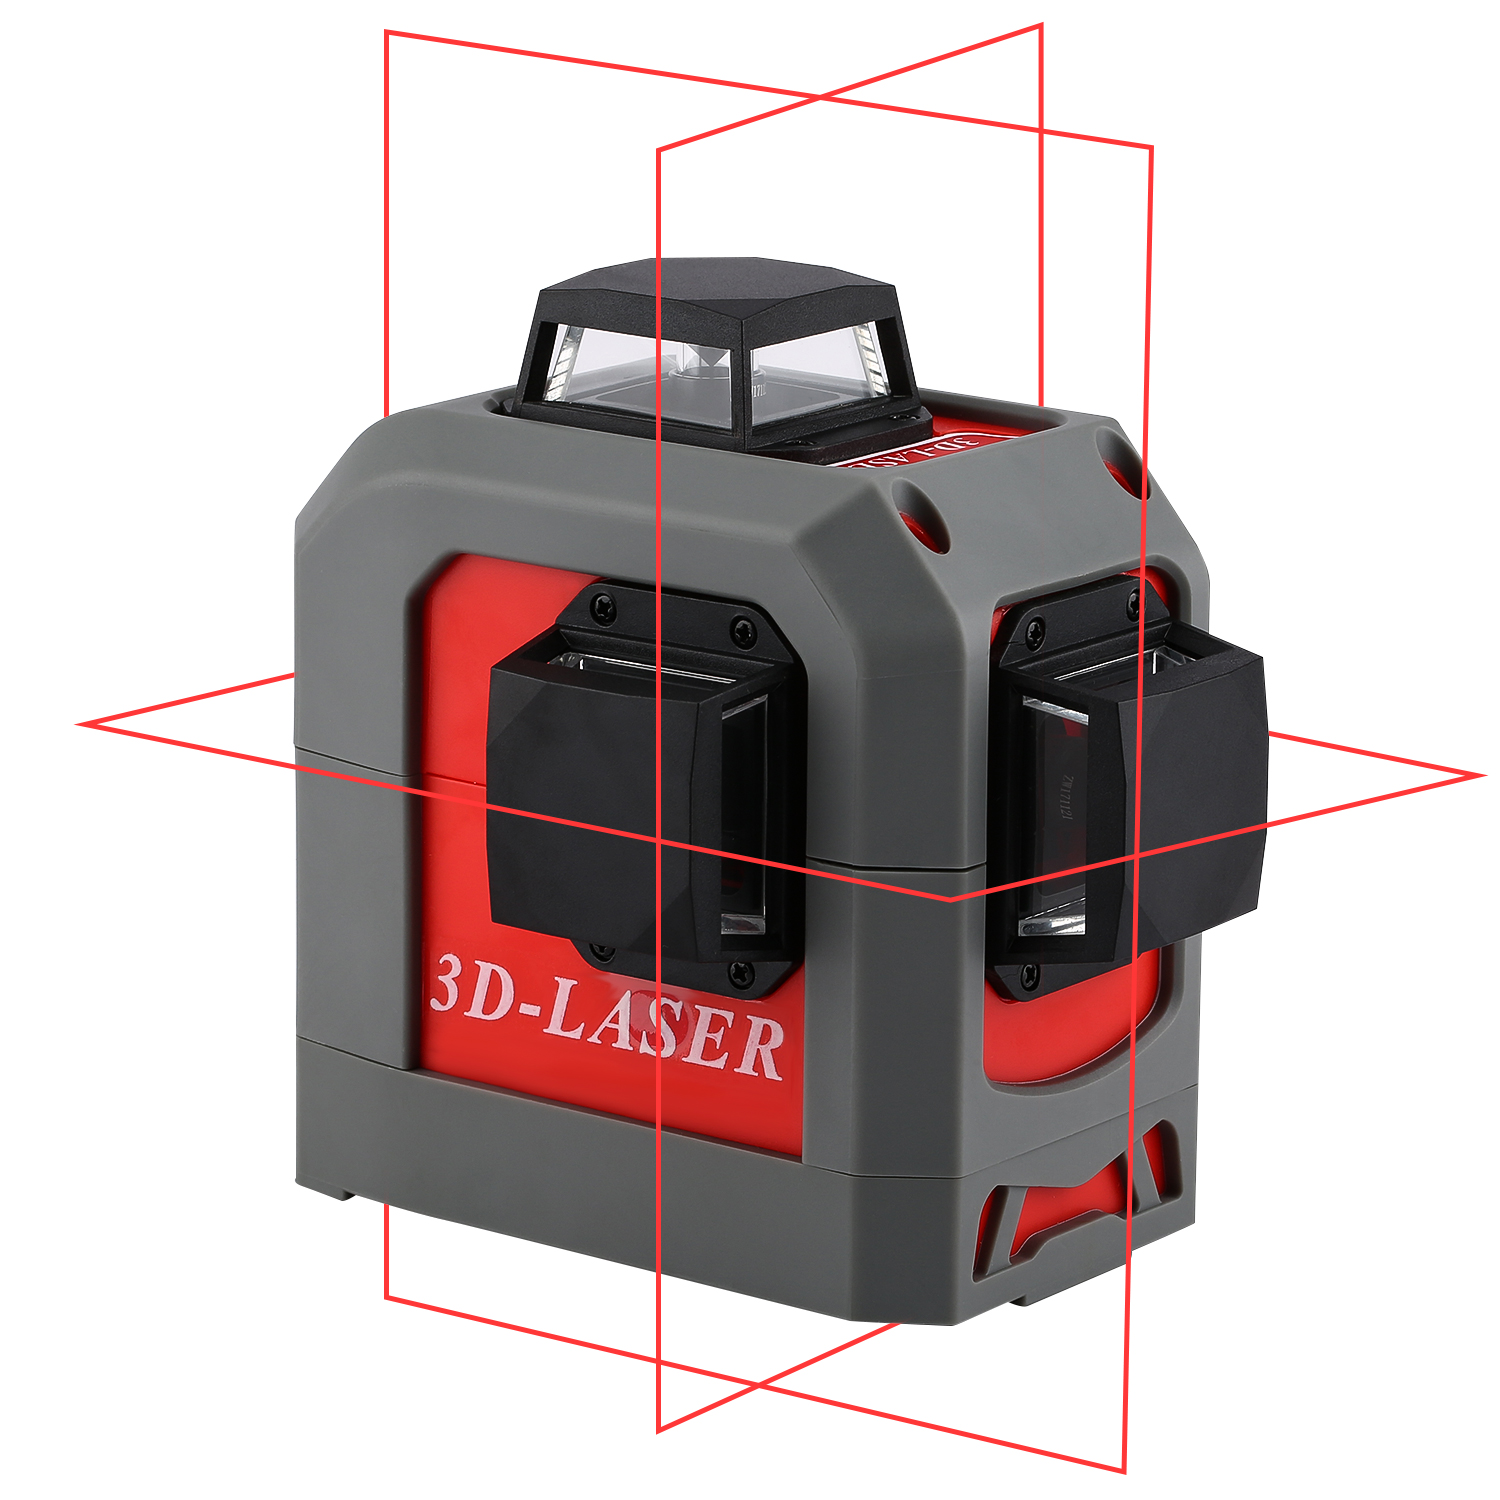 woodworking suspension line 360 3D laser measuring instrument tripod automatic leveling support device Red line rotor of